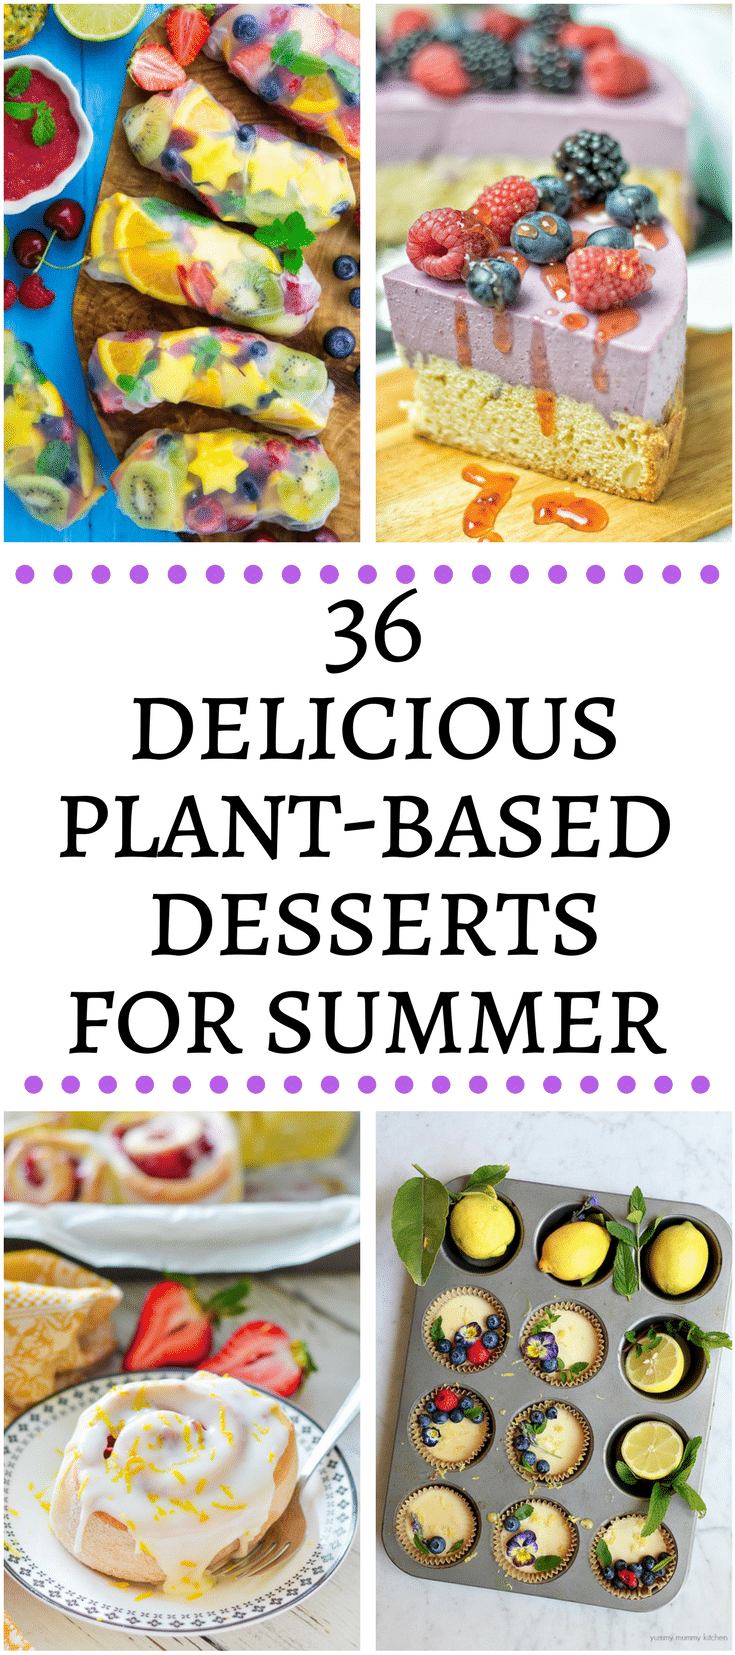 36 Absolutely delicious plant-based desserts for summer. Because dessert is life. Am I right?